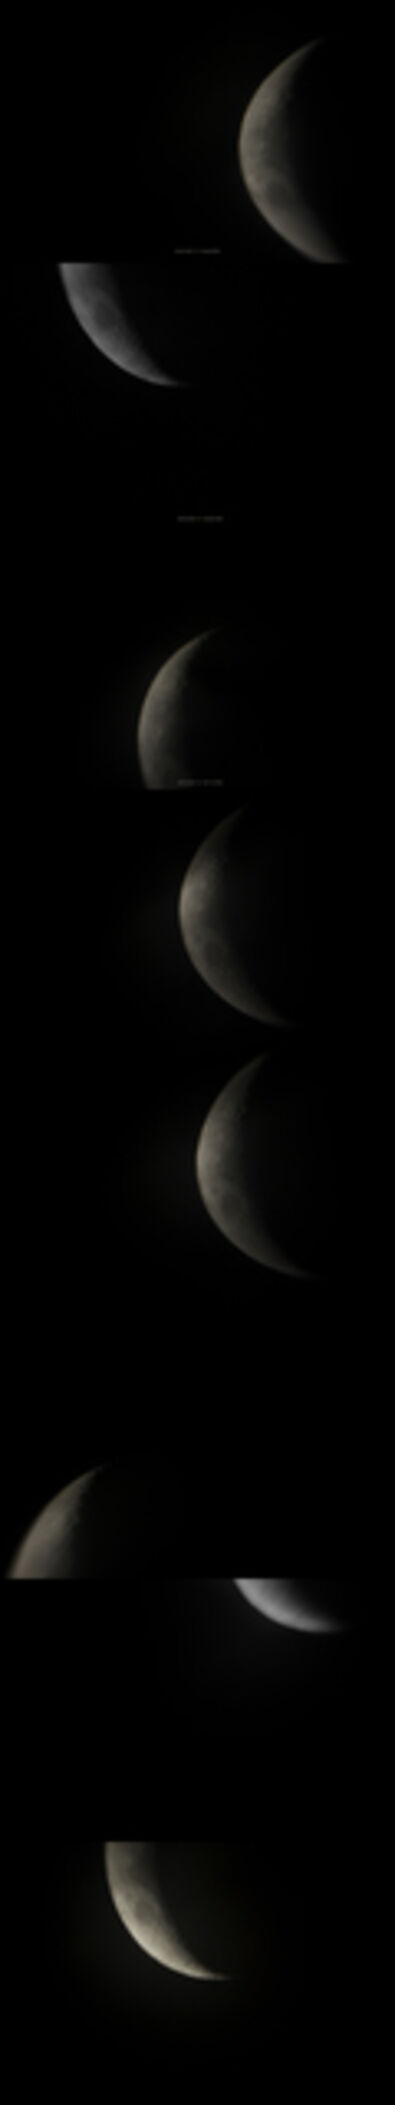 Sharon Harper, 'Sun/Moon (Trying to See through a Telescope), 2010 Oct 11 7:26:48PM - 2010 Oct 11 7:29:48PM', 2010